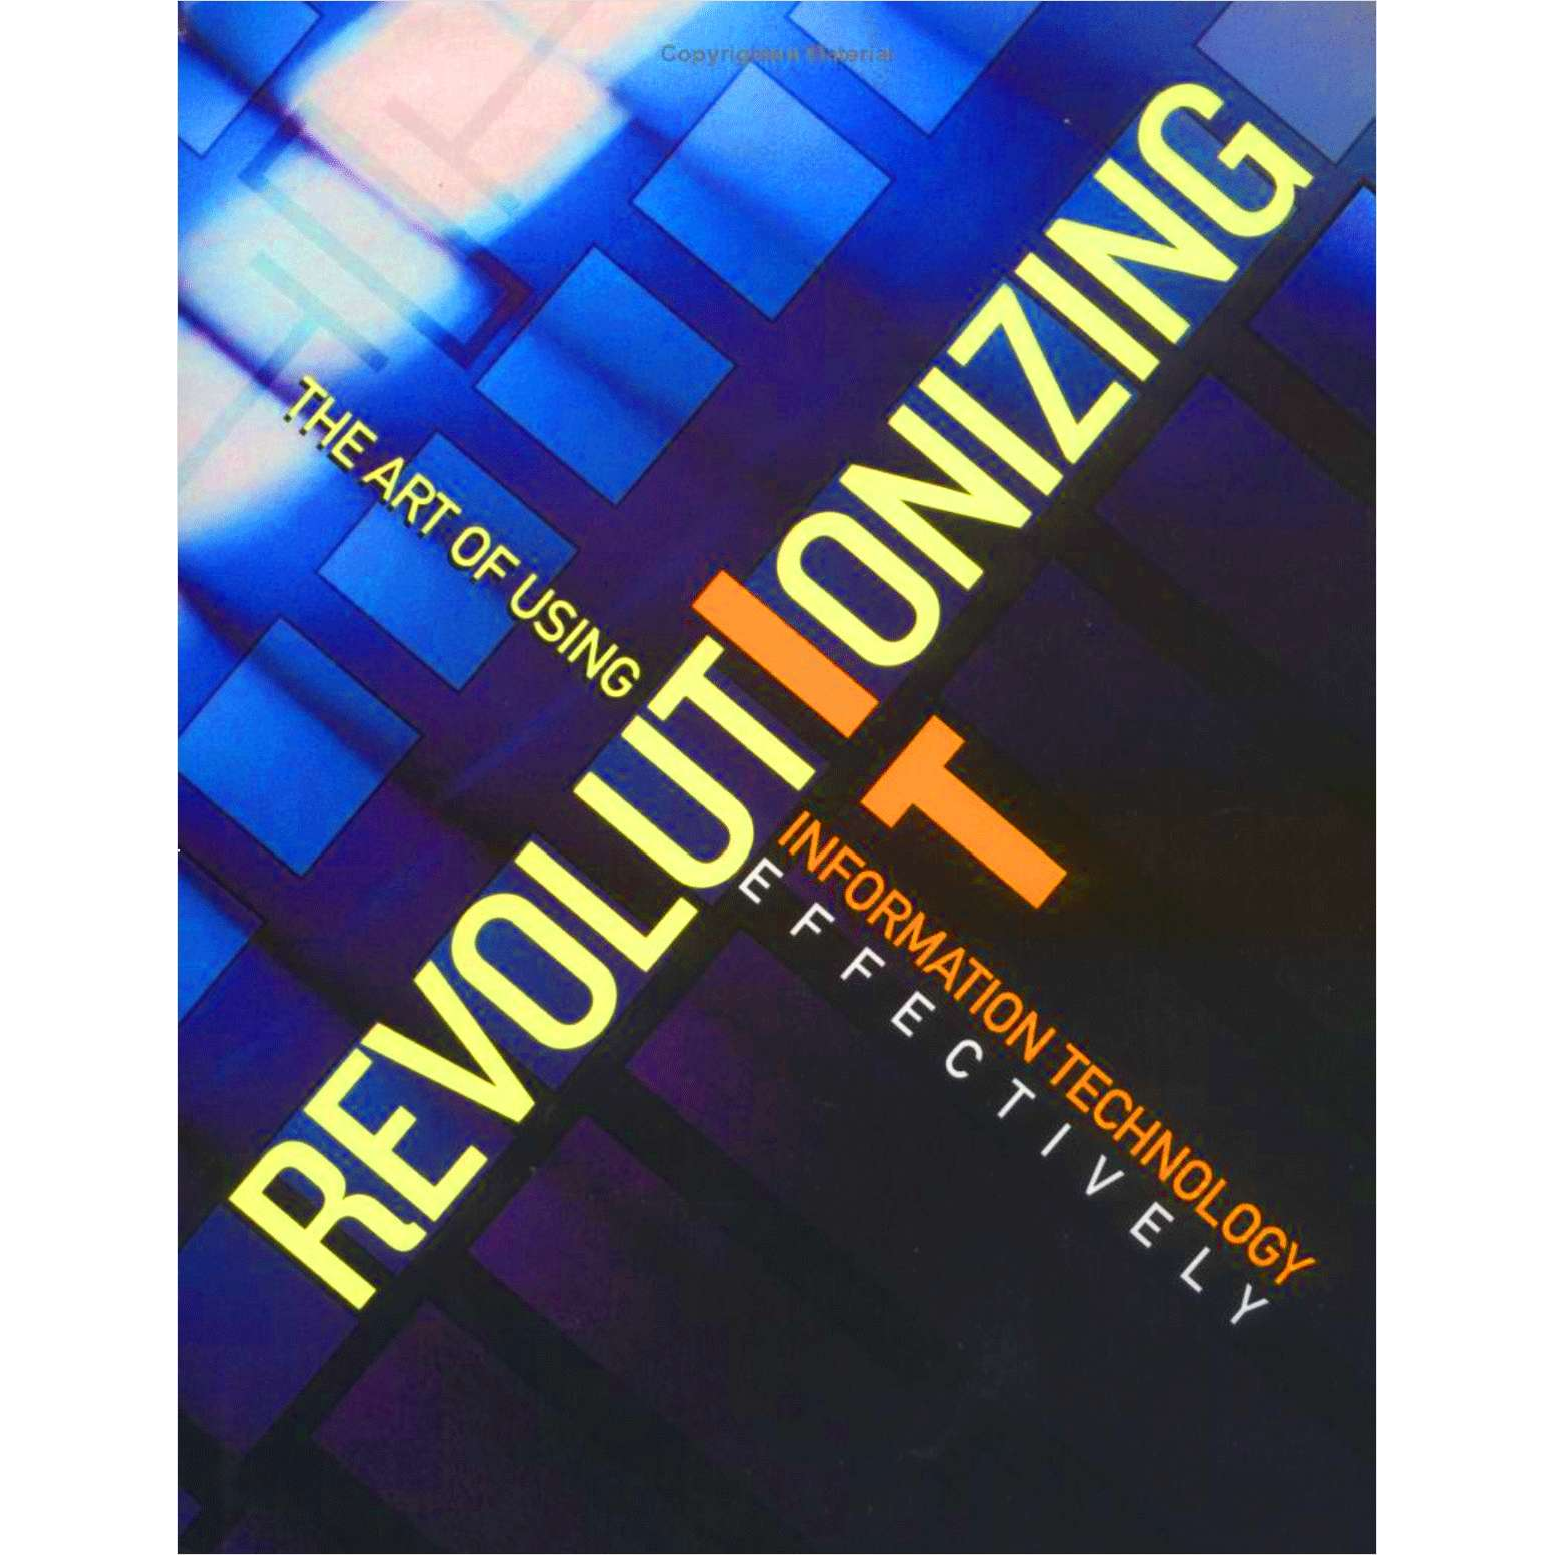 Revolutionizing IT Research Kit (Includes a Free $8.50 Book Summary) Screenshot